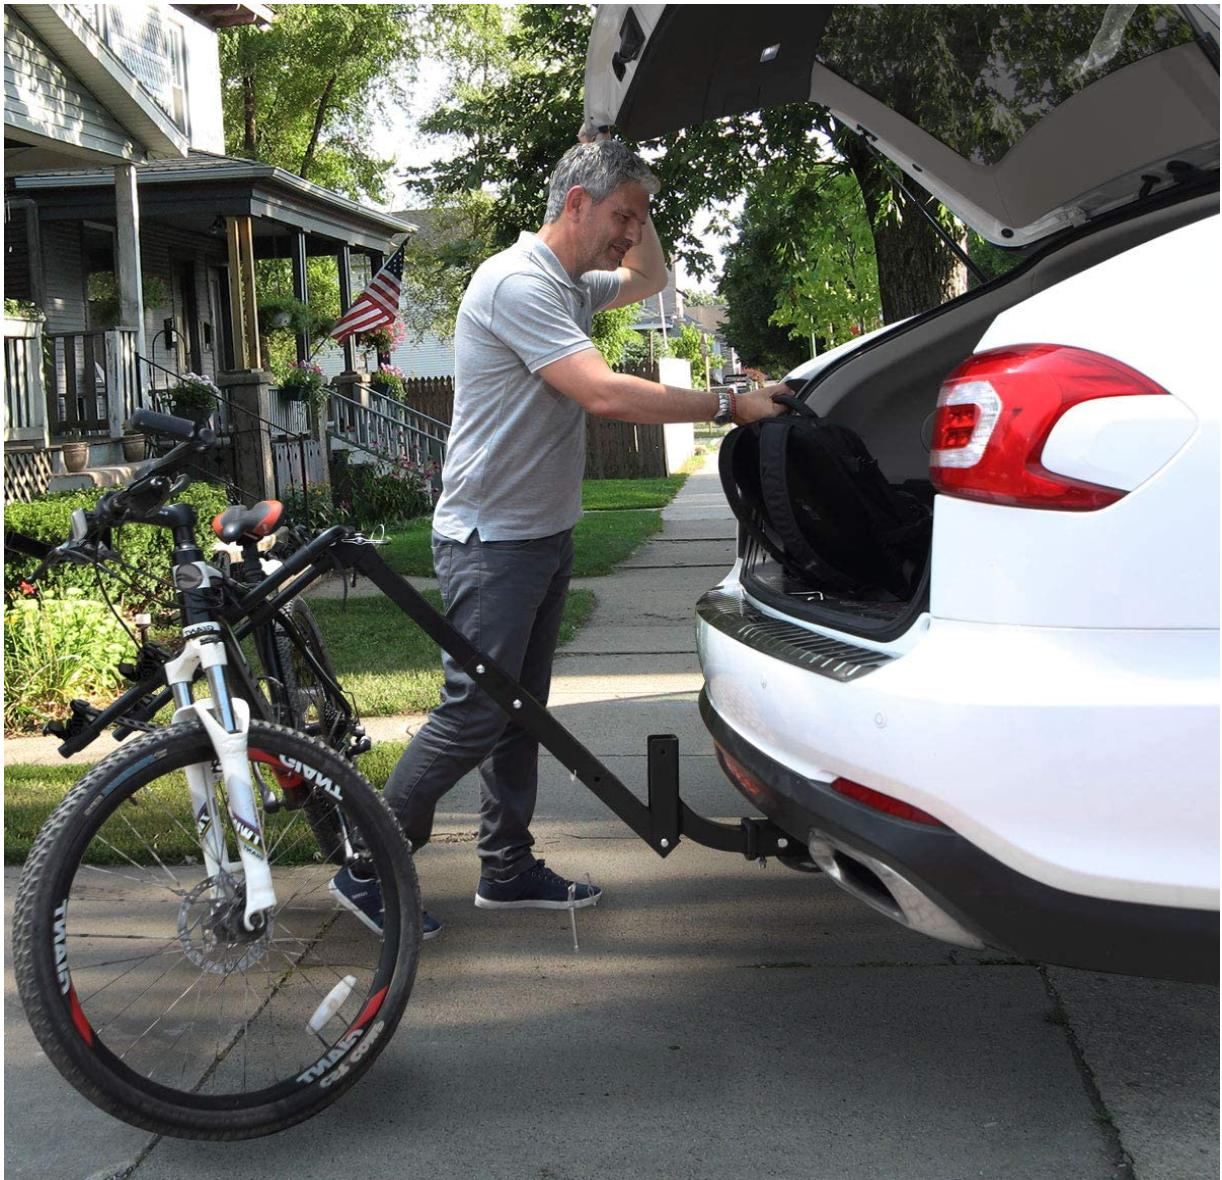 4 Mount SUV Trailer Bicycle Carrier